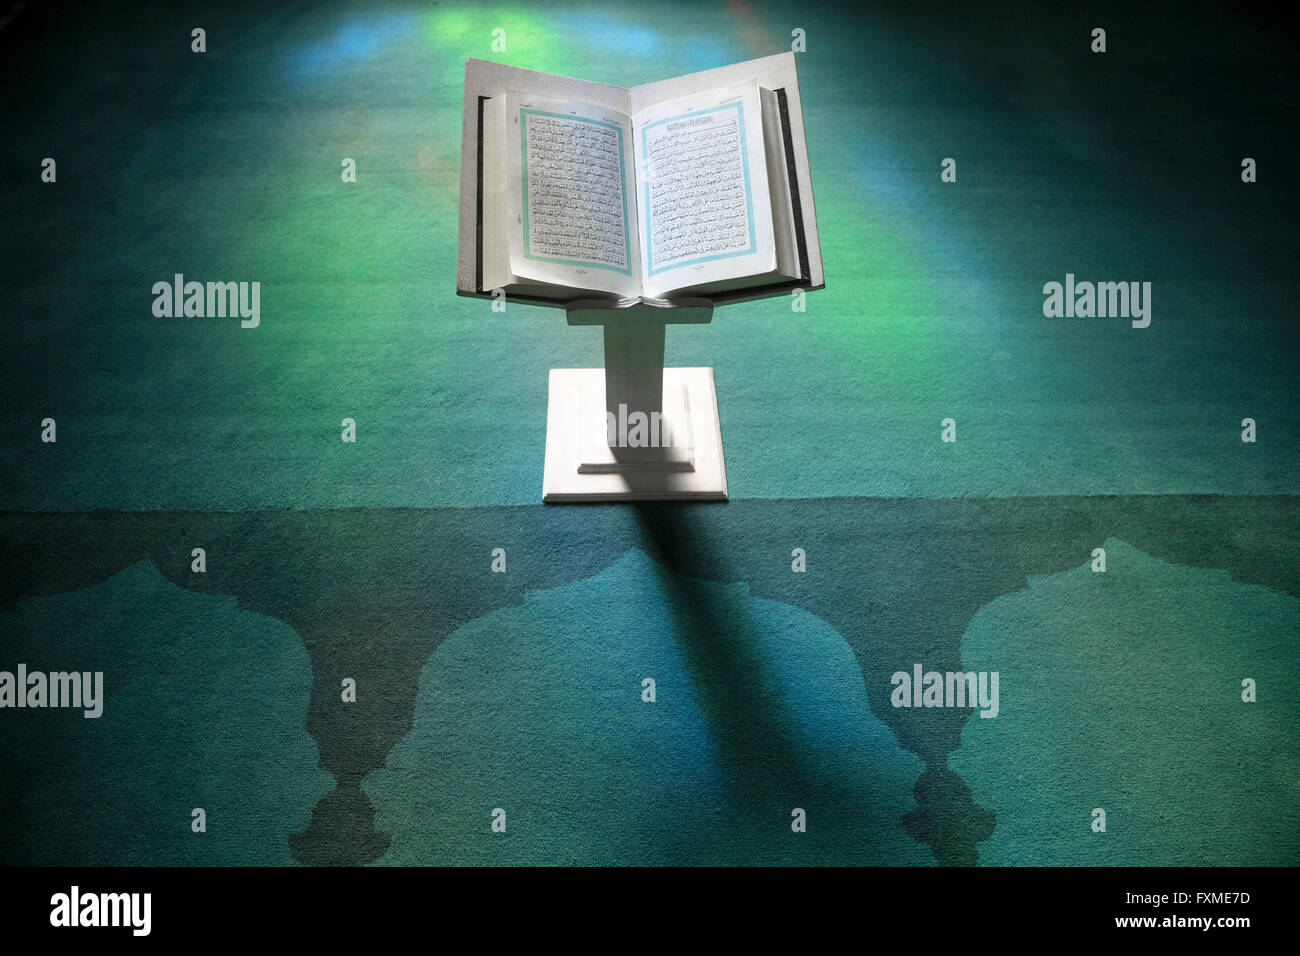 The sacred book of Muslims - the Koran is on the stand in the mosque during prayer - Stock Image